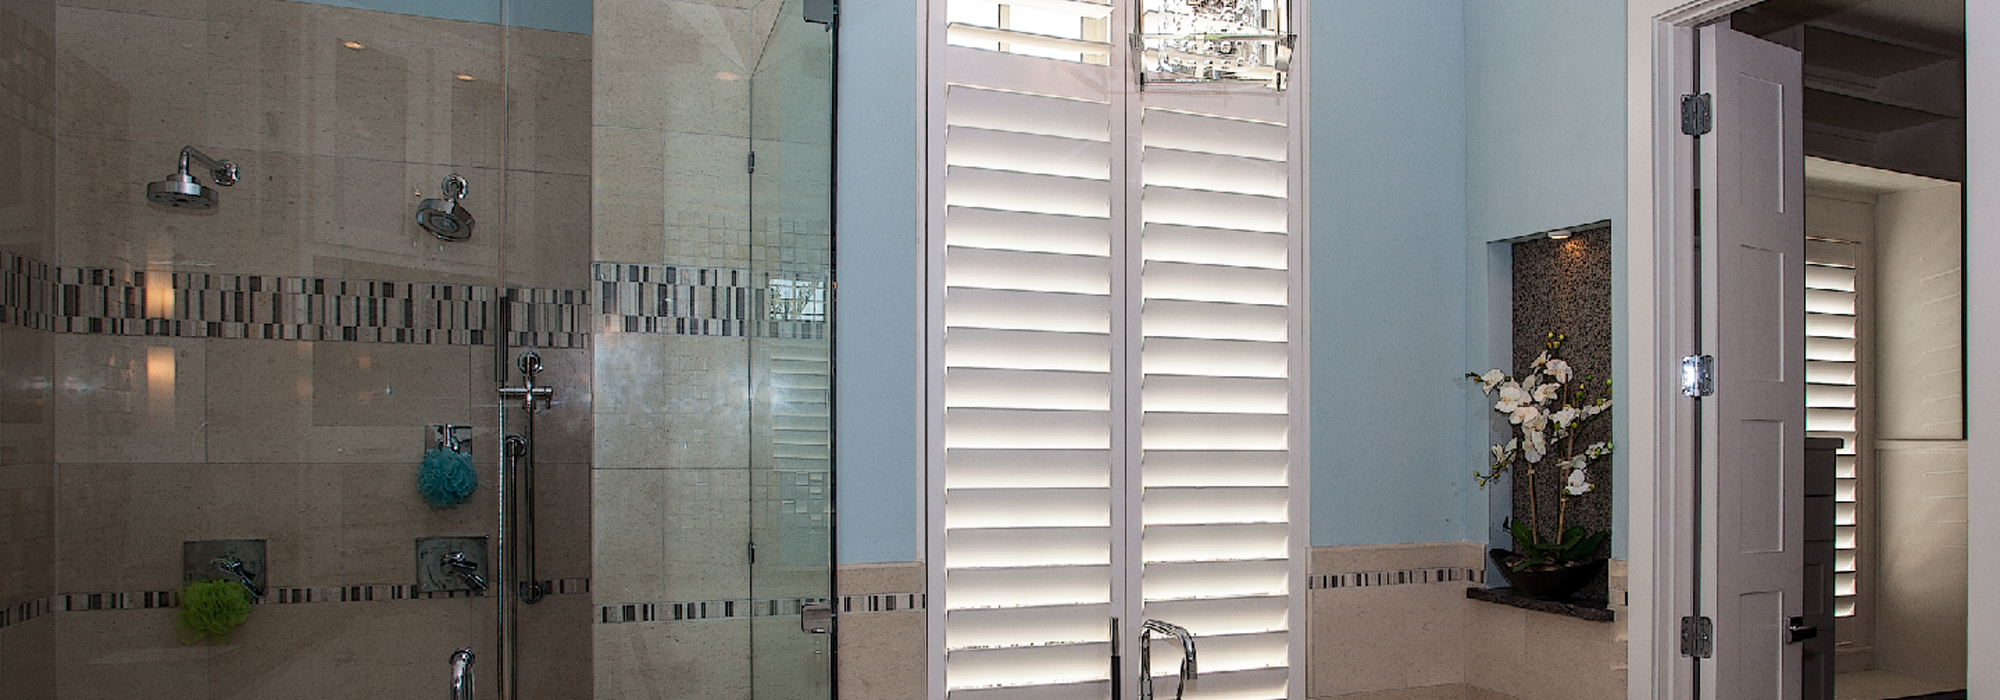 Bathroom Shutters by Southwest Blinds and Shutters in Phoenix